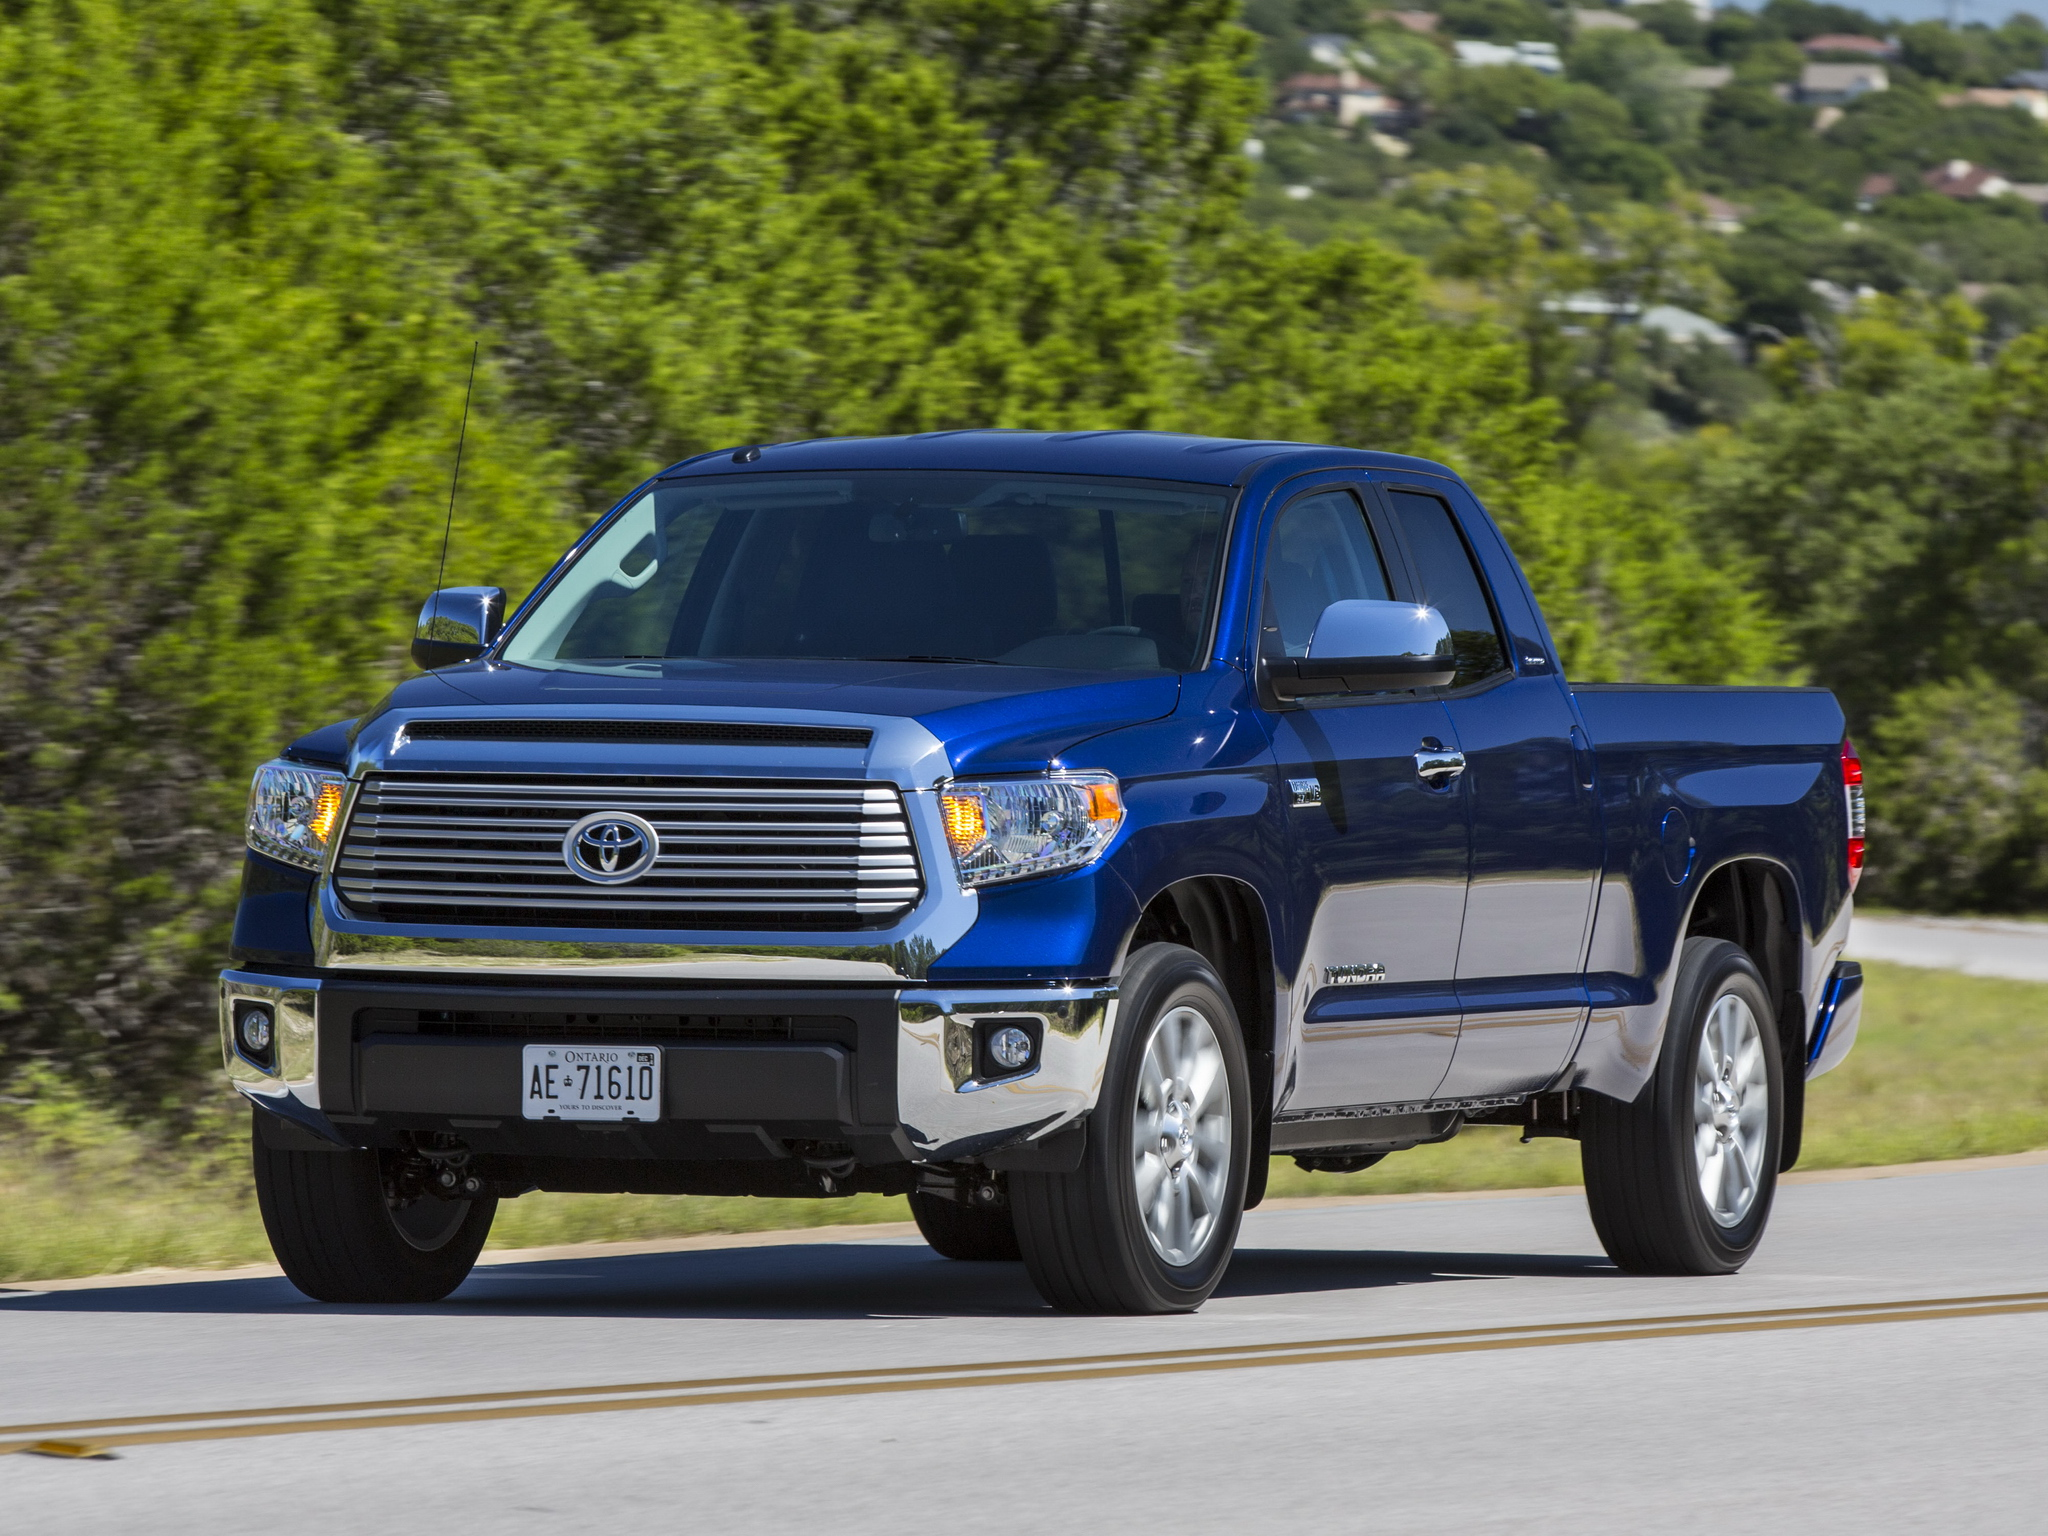 2014 toyota tundra double cab limited pickup f wallpaper 2048x1536 159339 wallpaperup. Black Bedroom Furniture Sets. Home Design Ideas